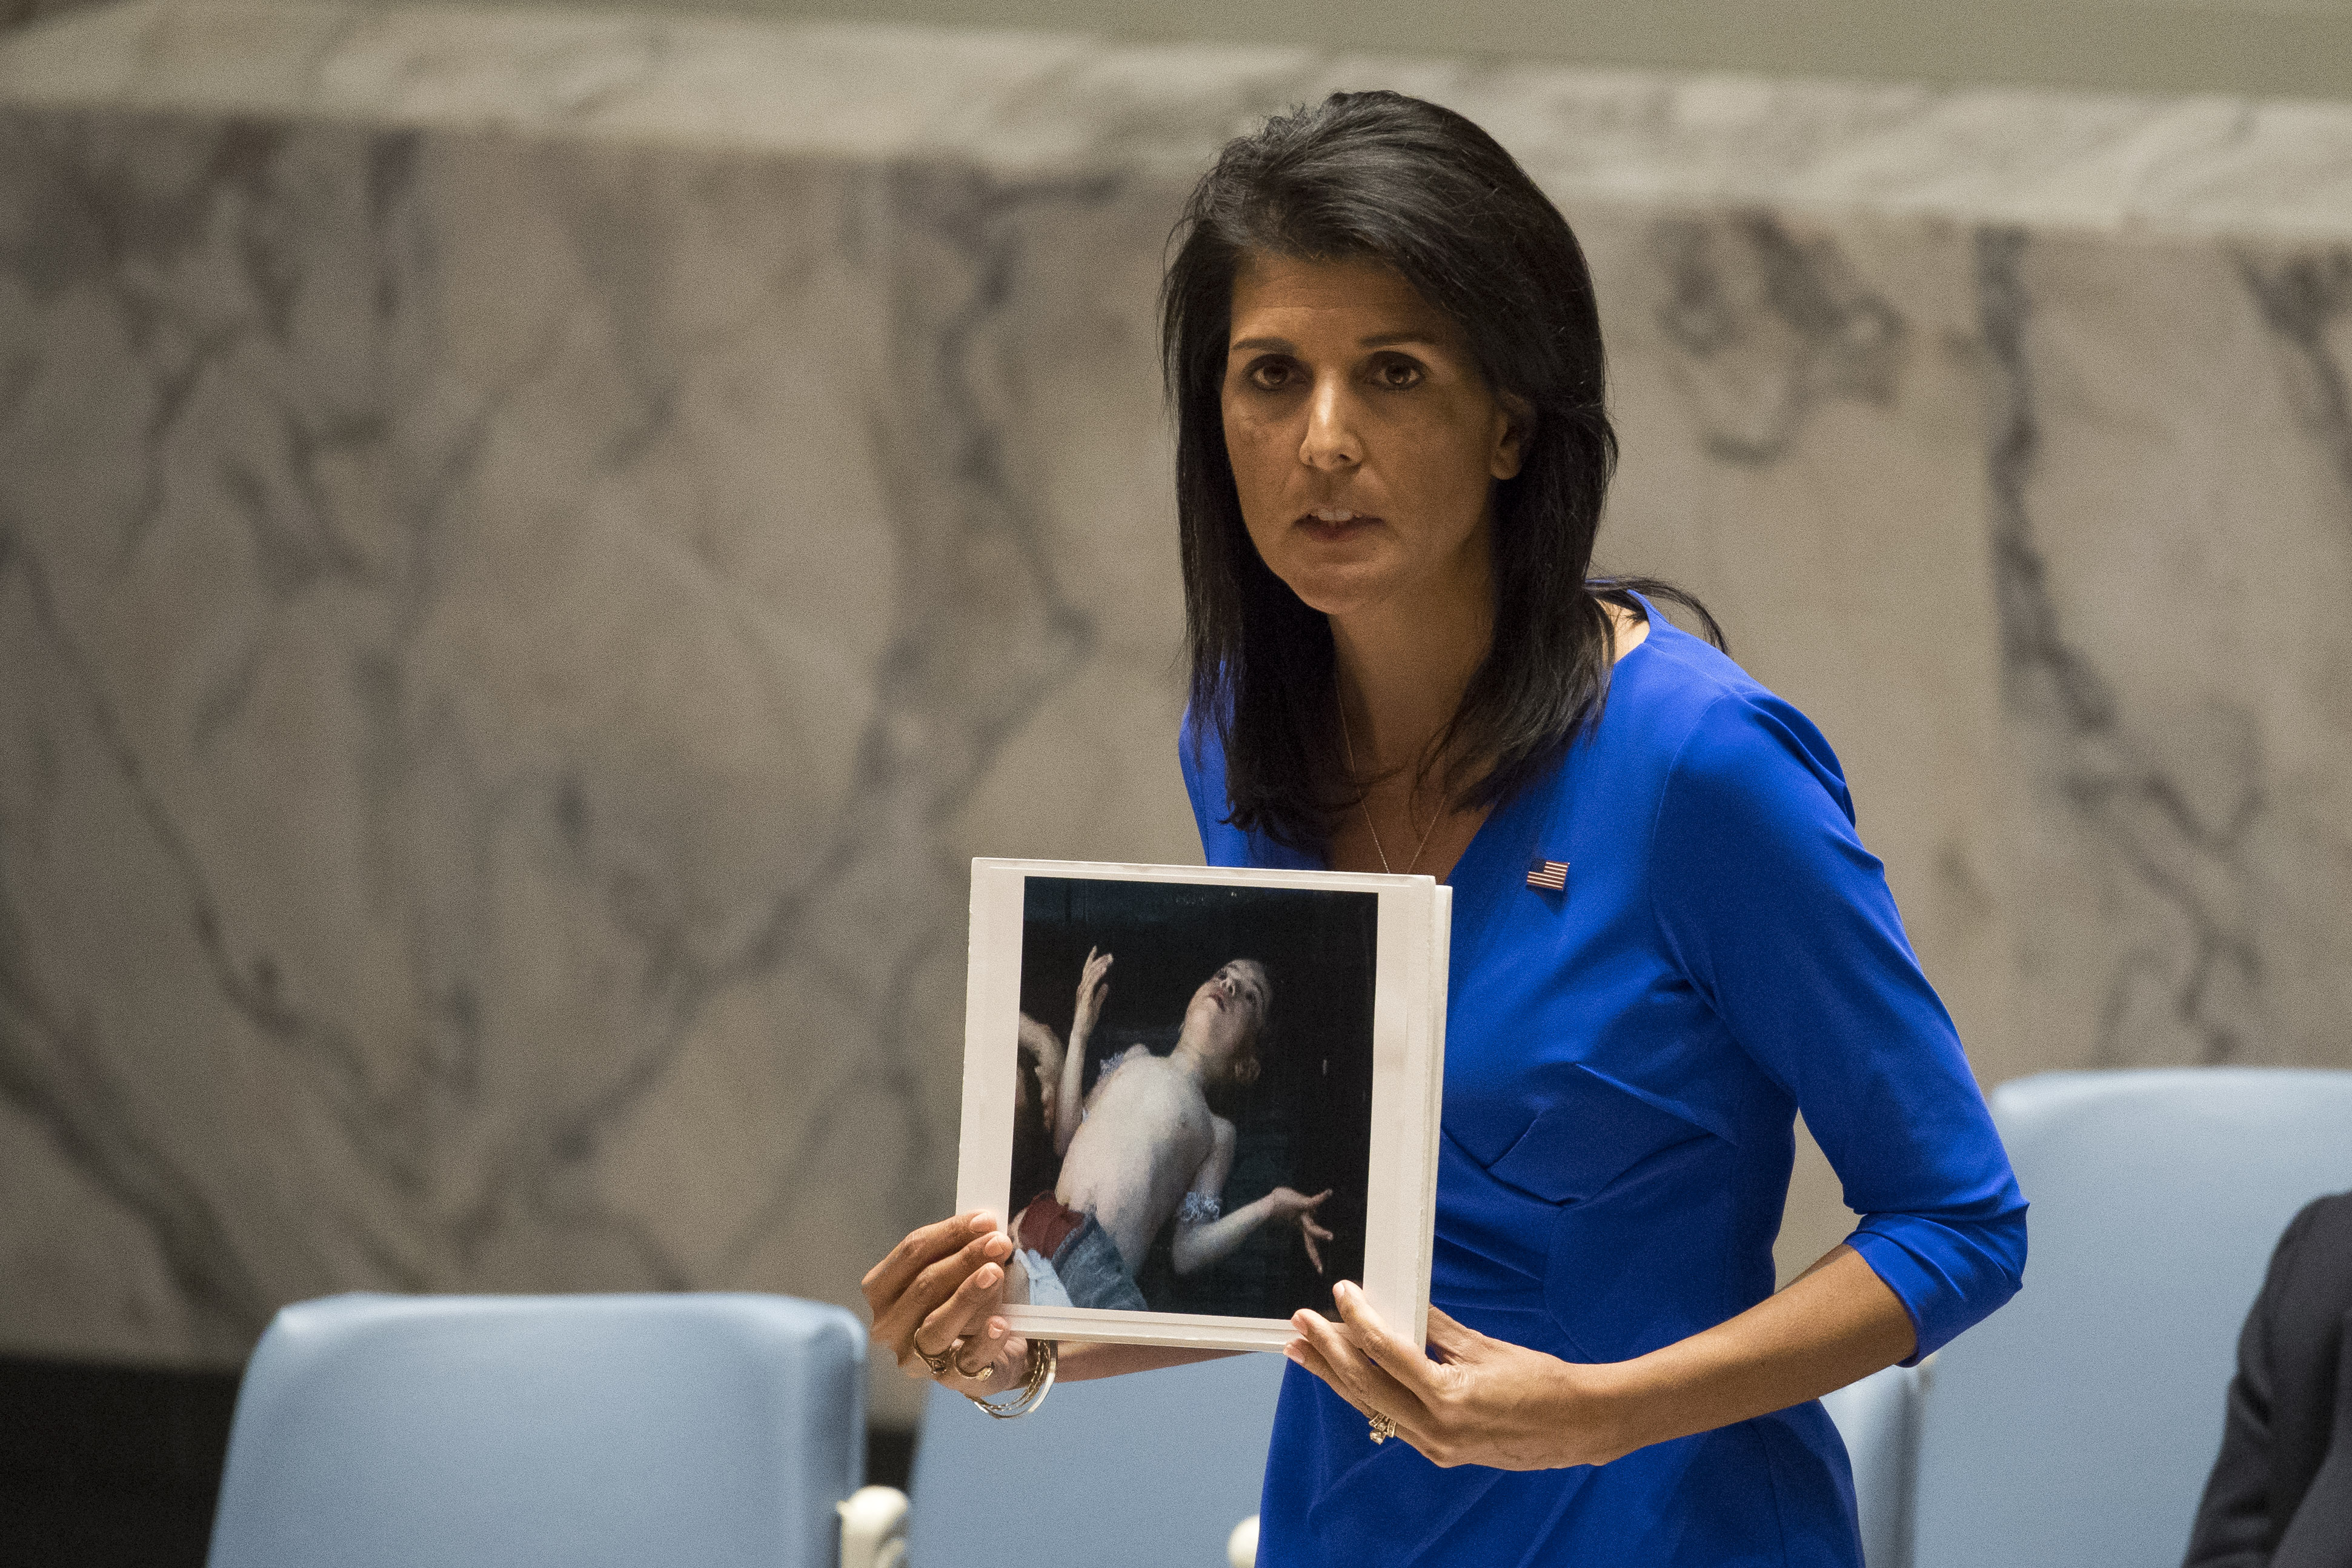 U.S. Ambassador to the United Nations Nikki Haley holds a photo of a victim of the Syrian chemical attack during a meeting of the United Nations Security Council at U.N. headquarters, April 5, 2017 in New York City.